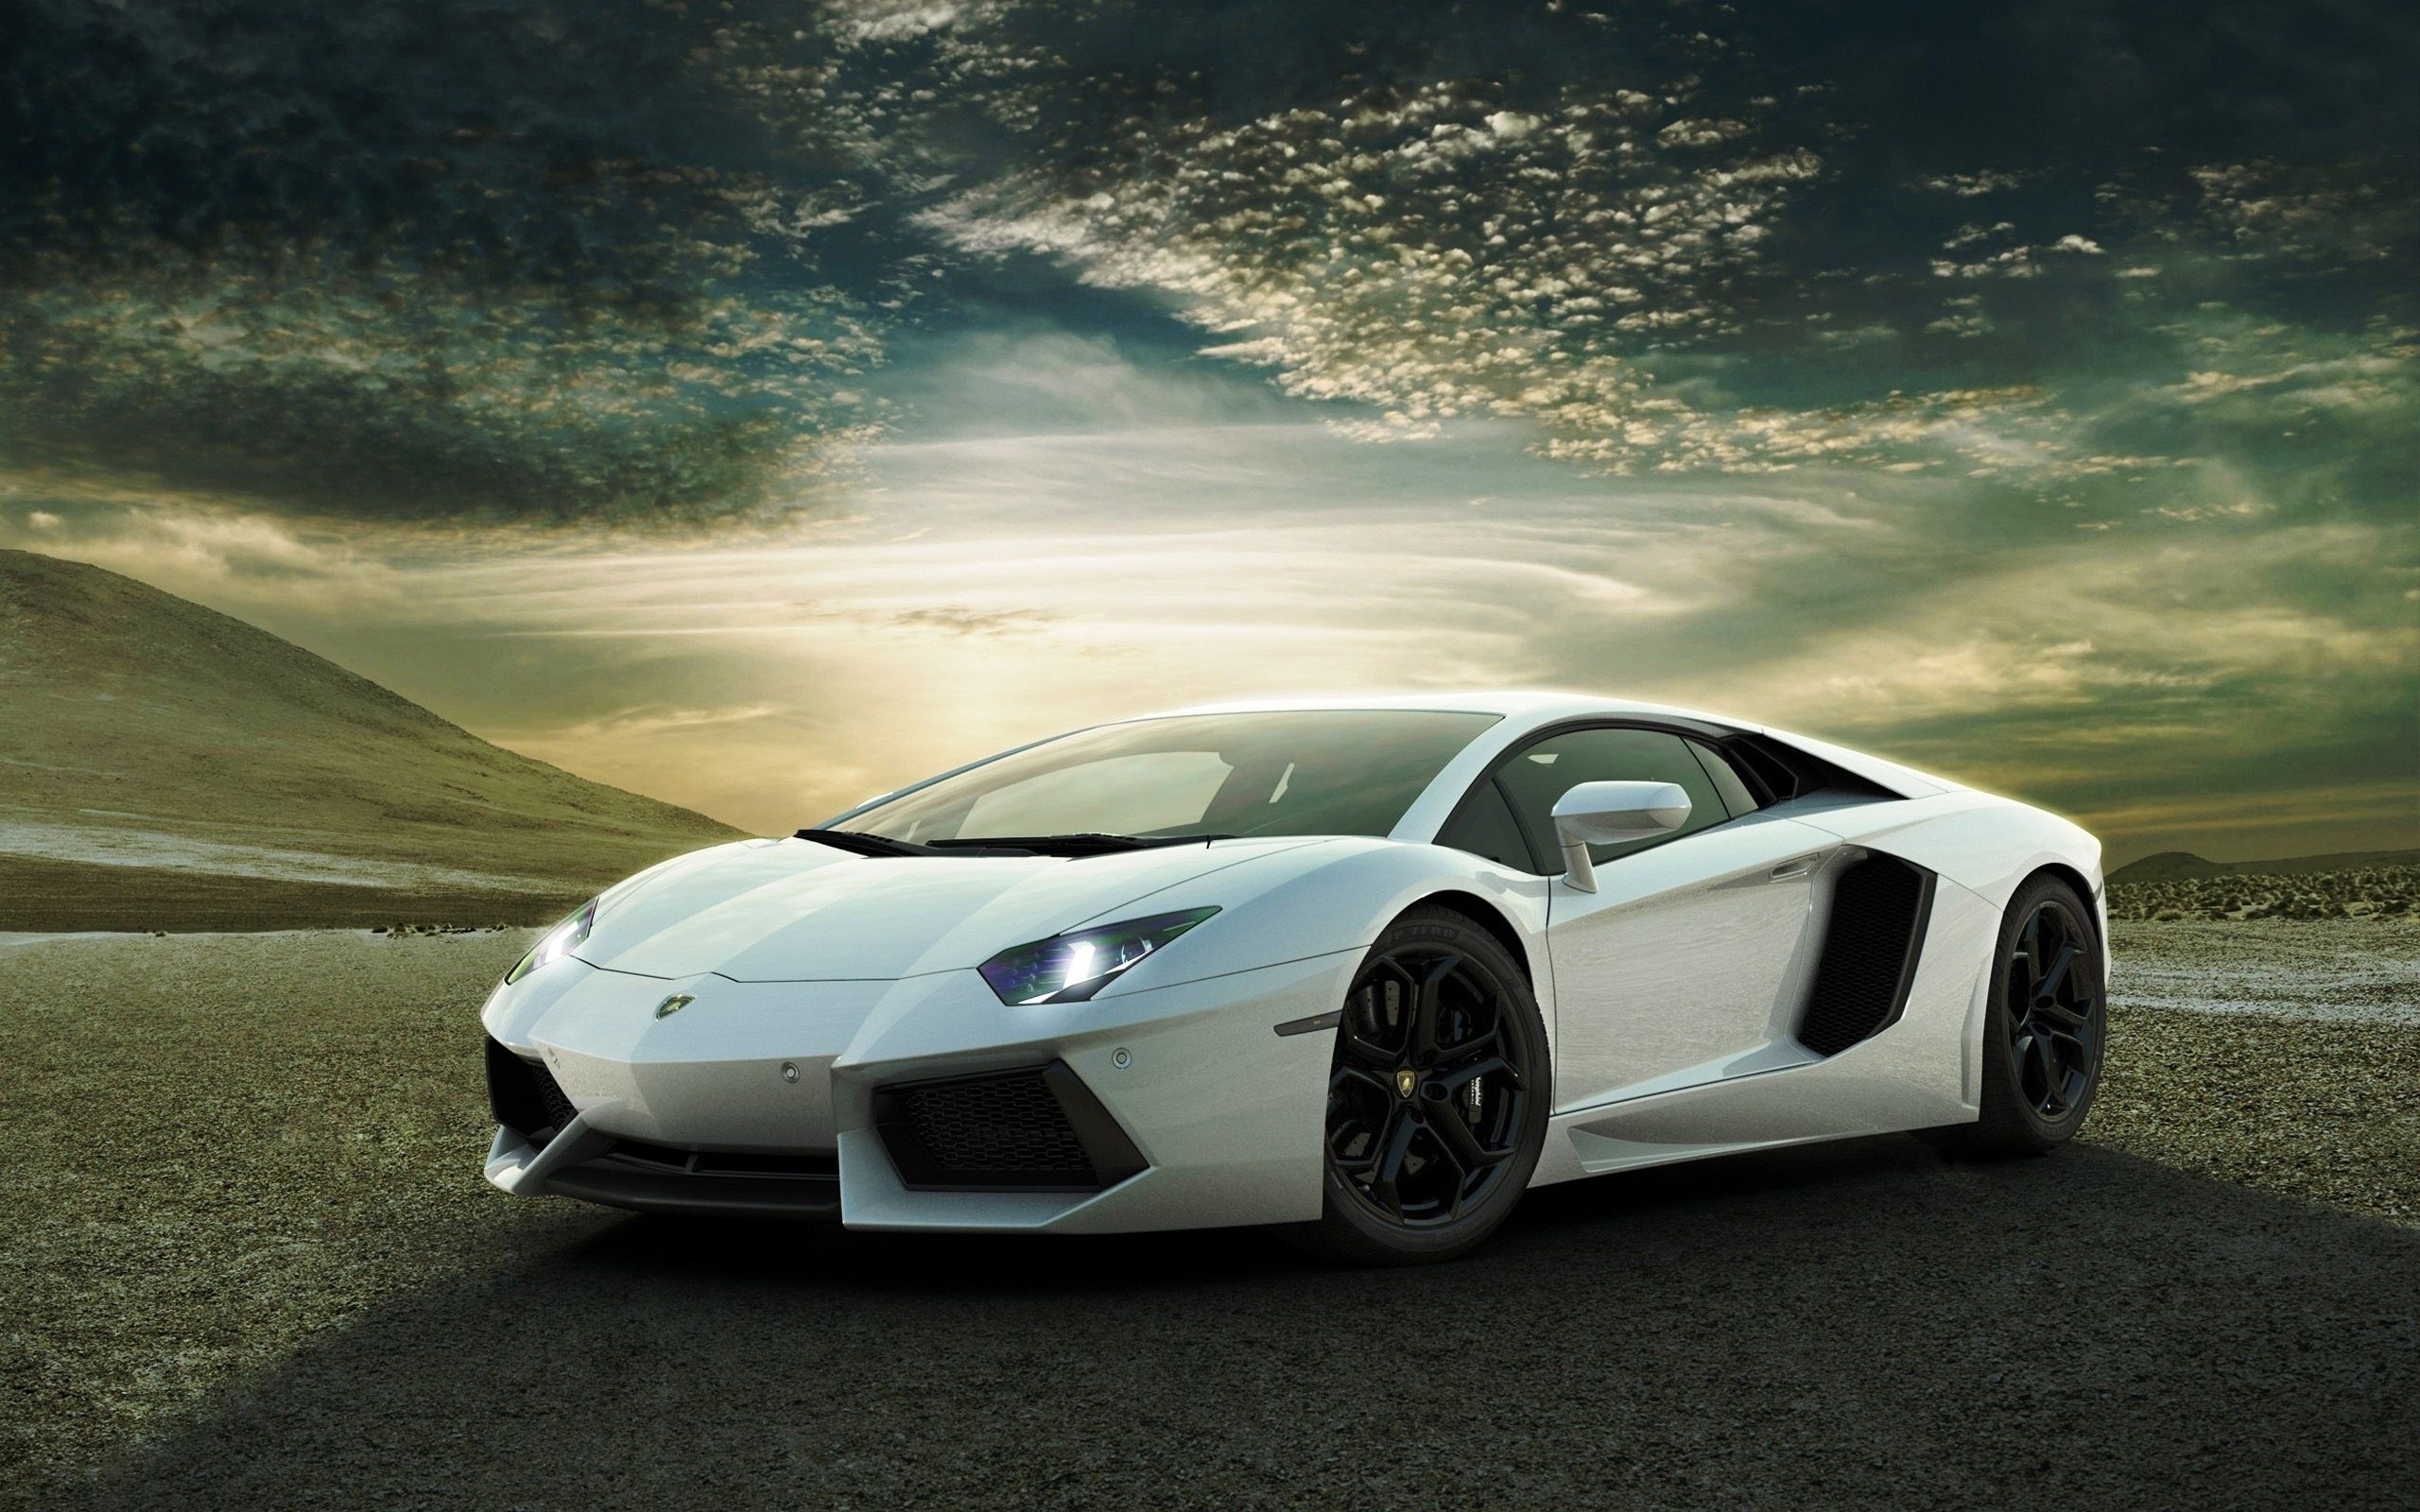 Lamborghini Cars Wallpapers Lamborghini Cars Wallpapers Throughout Lamborghini Cars Wallpapers  Lamborghini